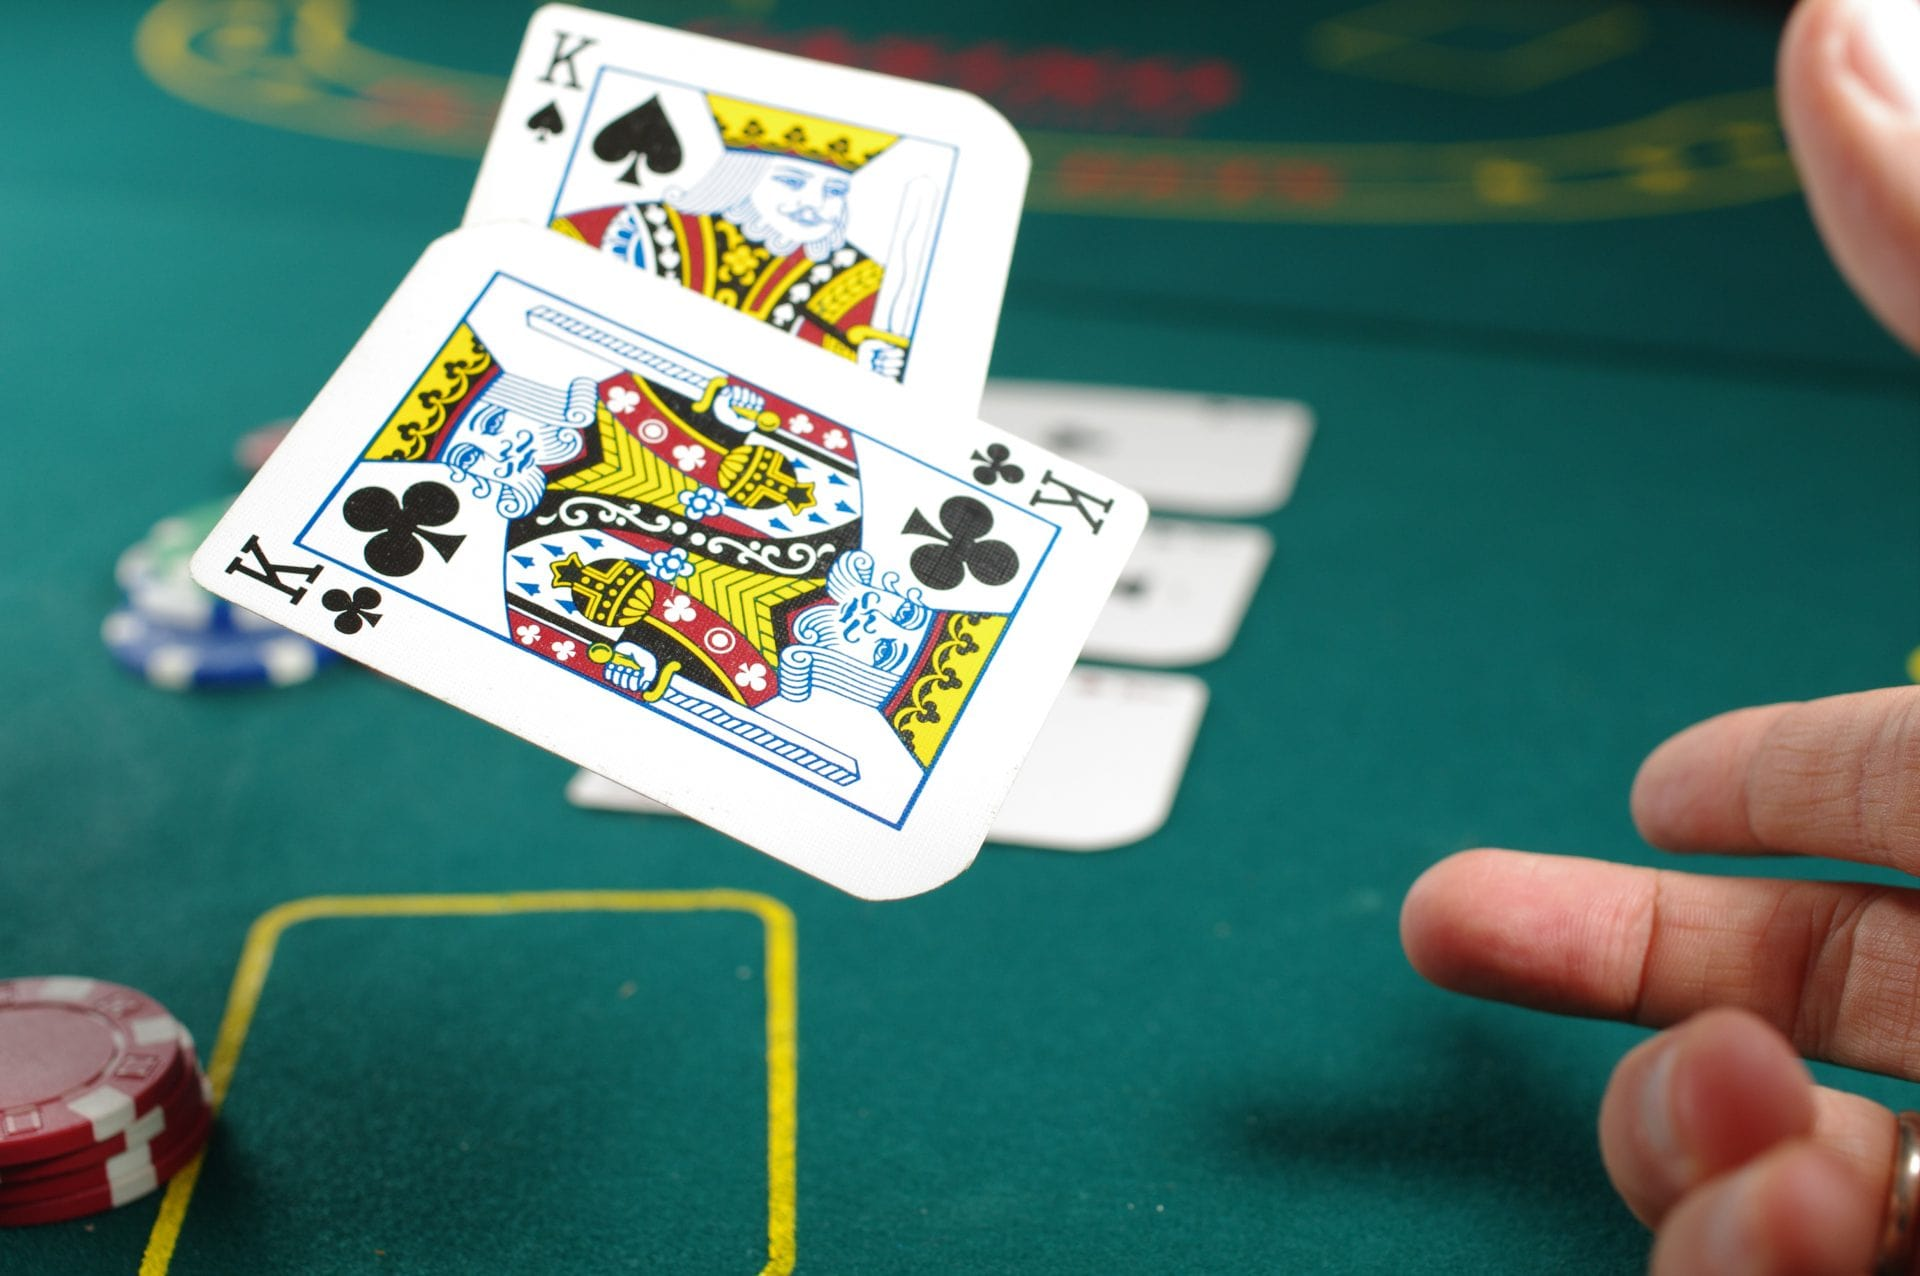 Curacao Introducing New Gambling Regulatory Body to Seek and Implement Industry